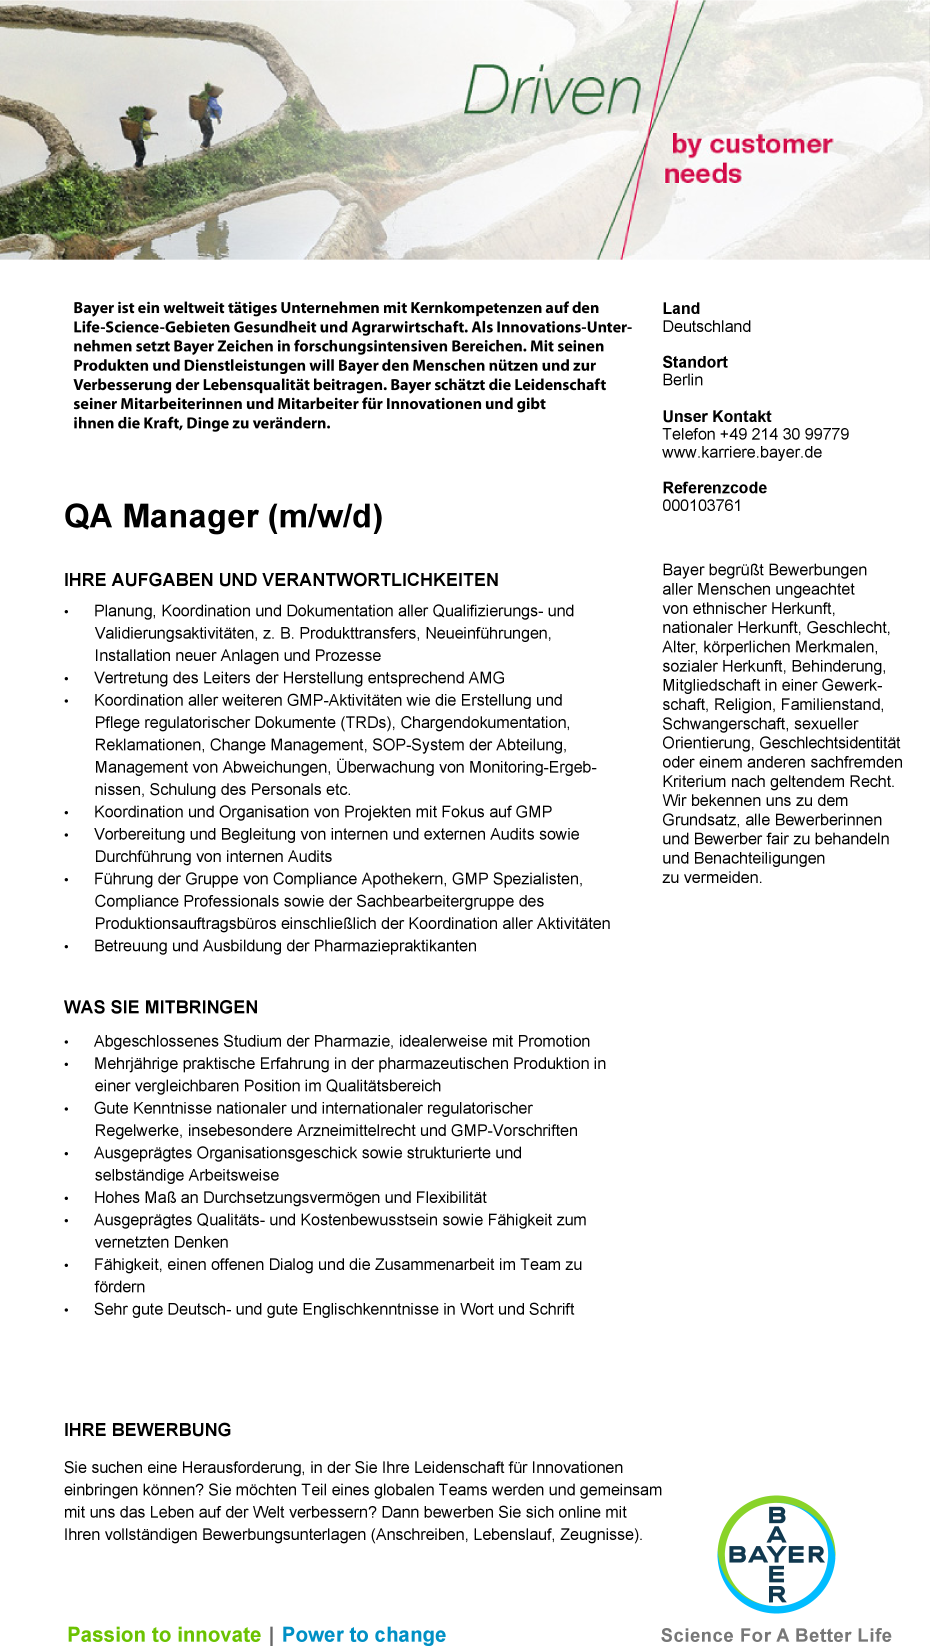 QA Manager (m/w/d)